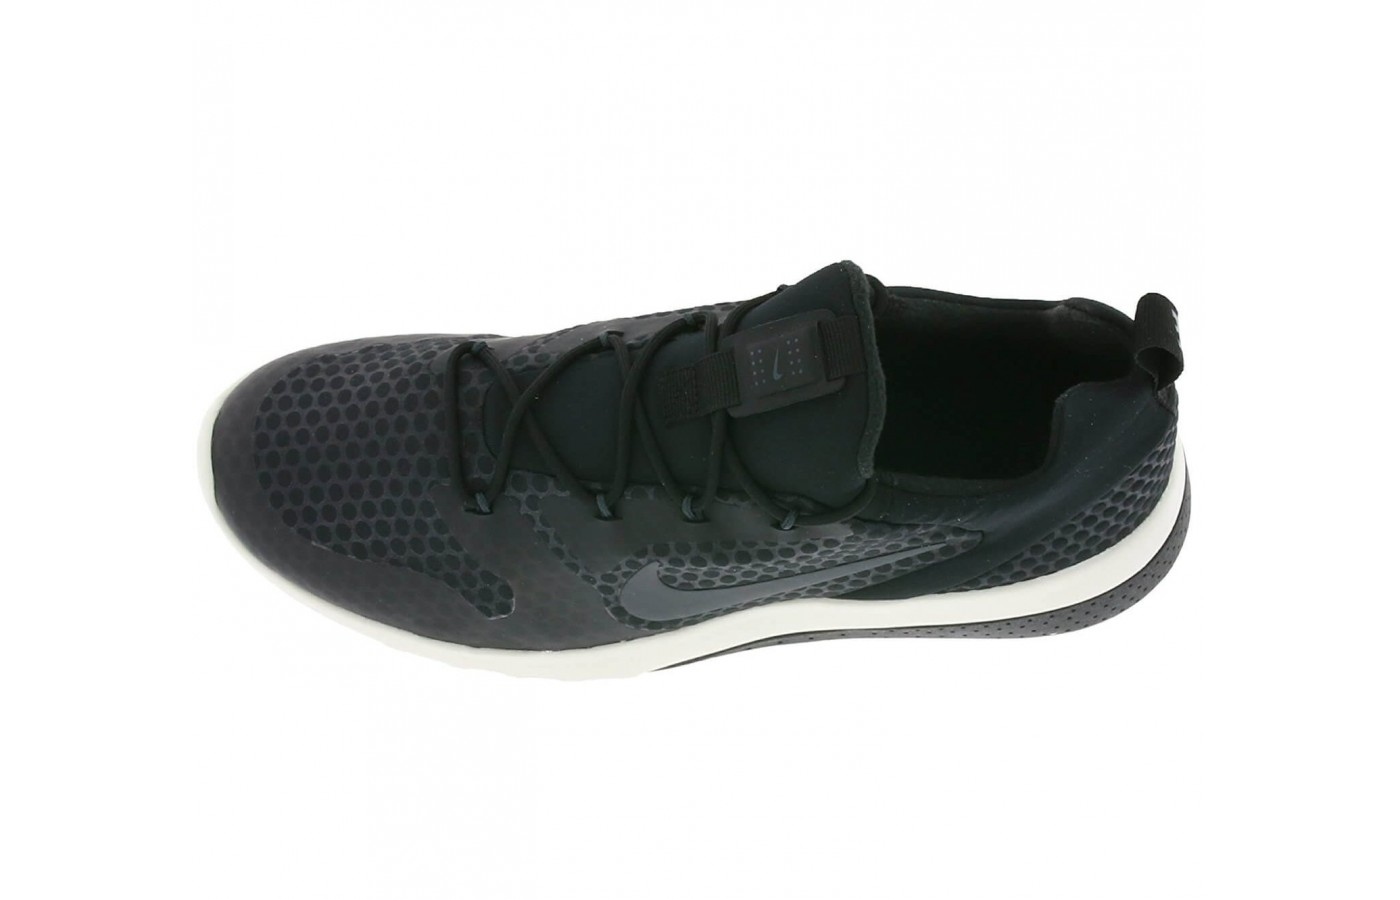 The upper portion of the Nike CK Racer is less breathable than their Flyknit material but much more protective.